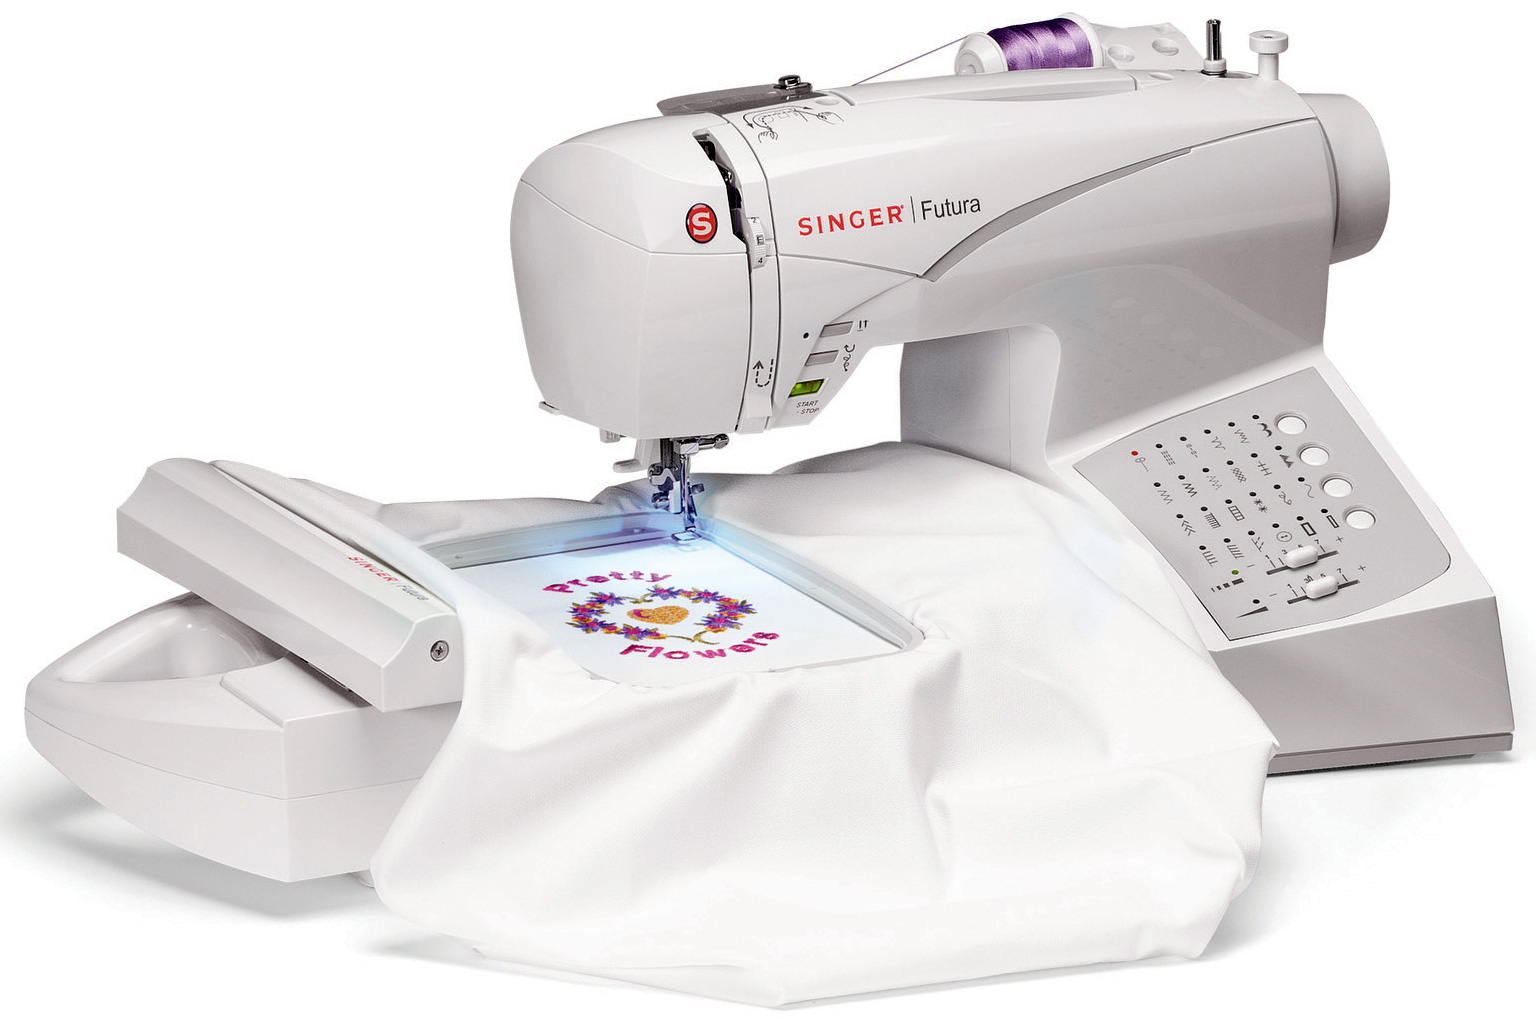 Singer futura ce embroidery sewing machine w free